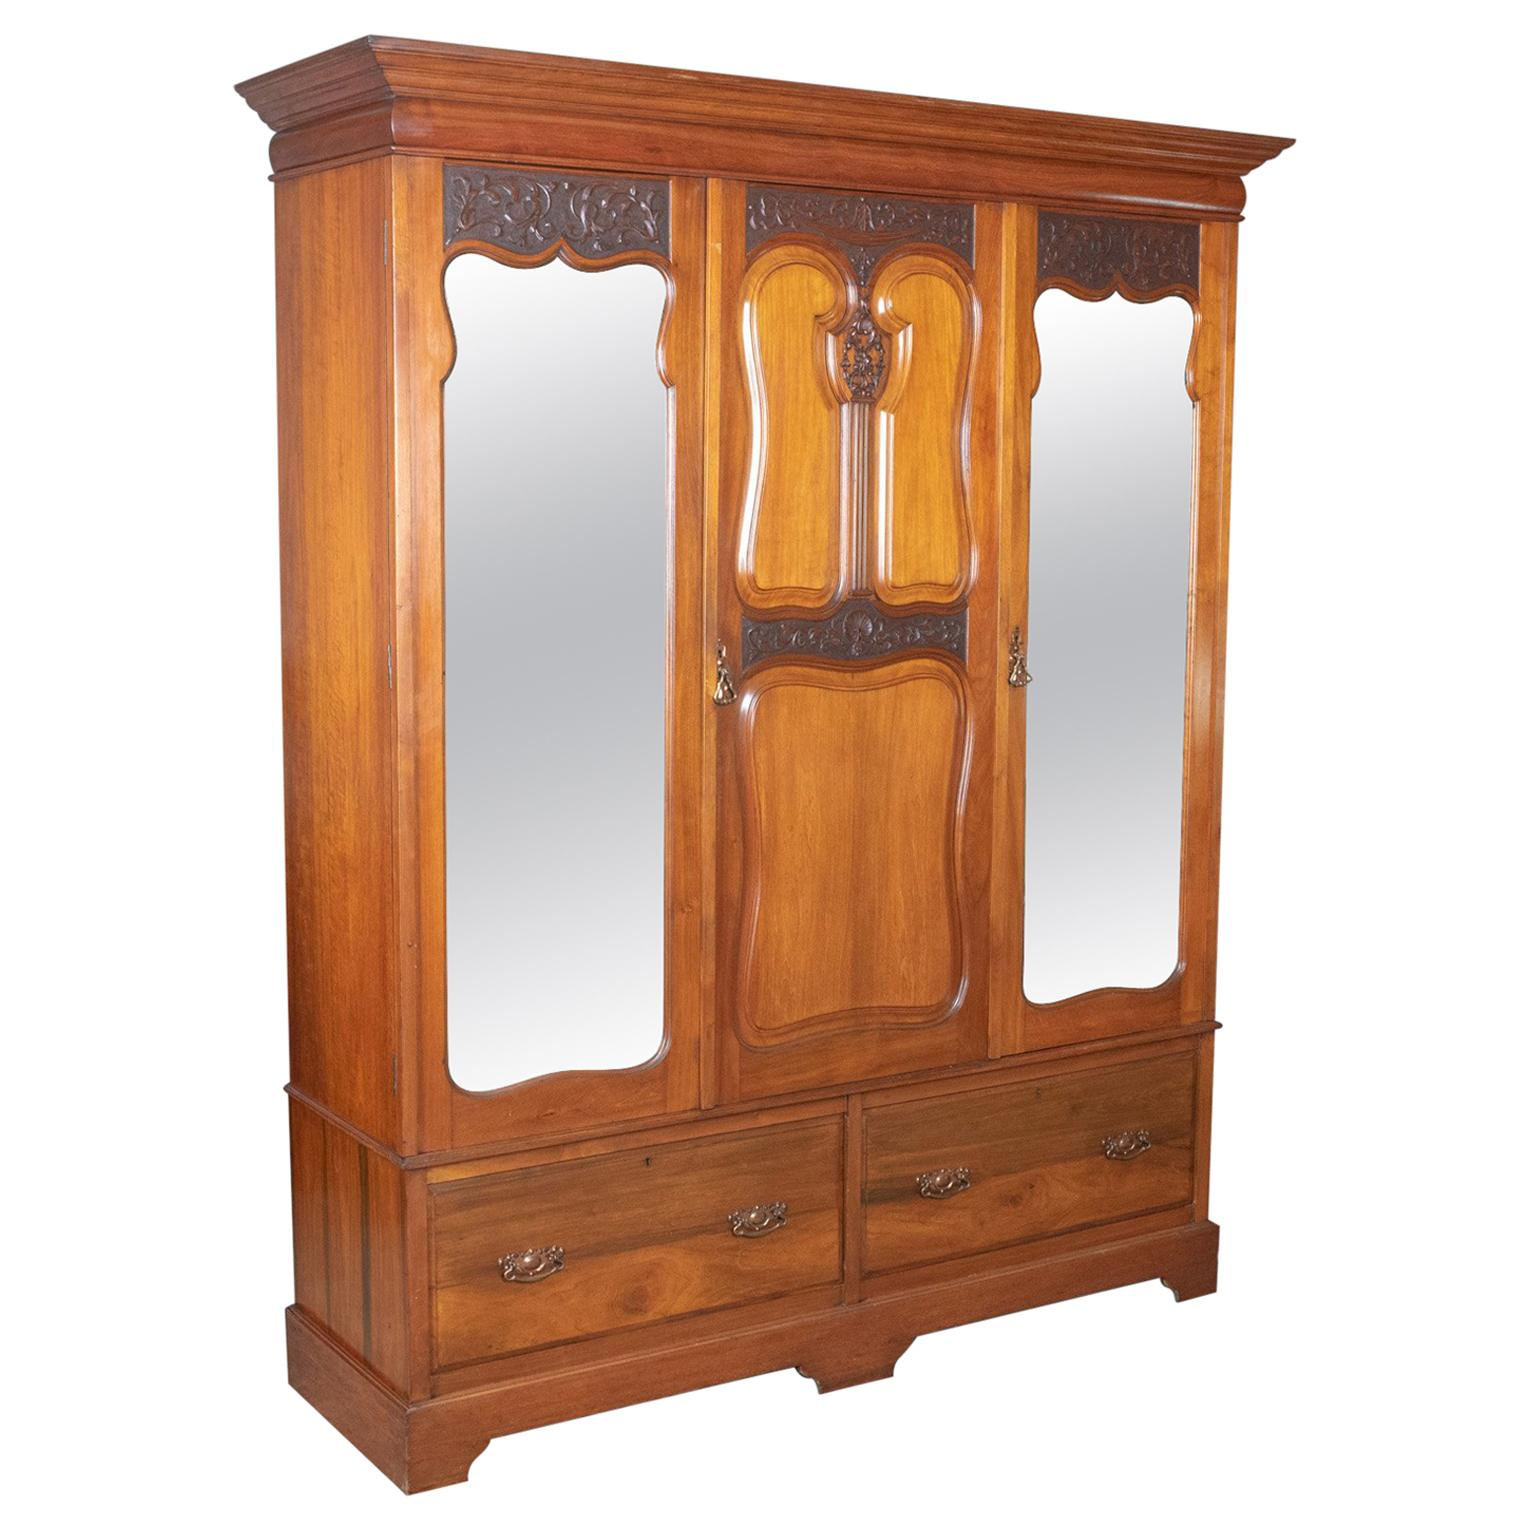 Antiques 100% Quality Antique Edwardian Wardrobe Carved Mahogany Mirror Triple Armoire Moderate Price